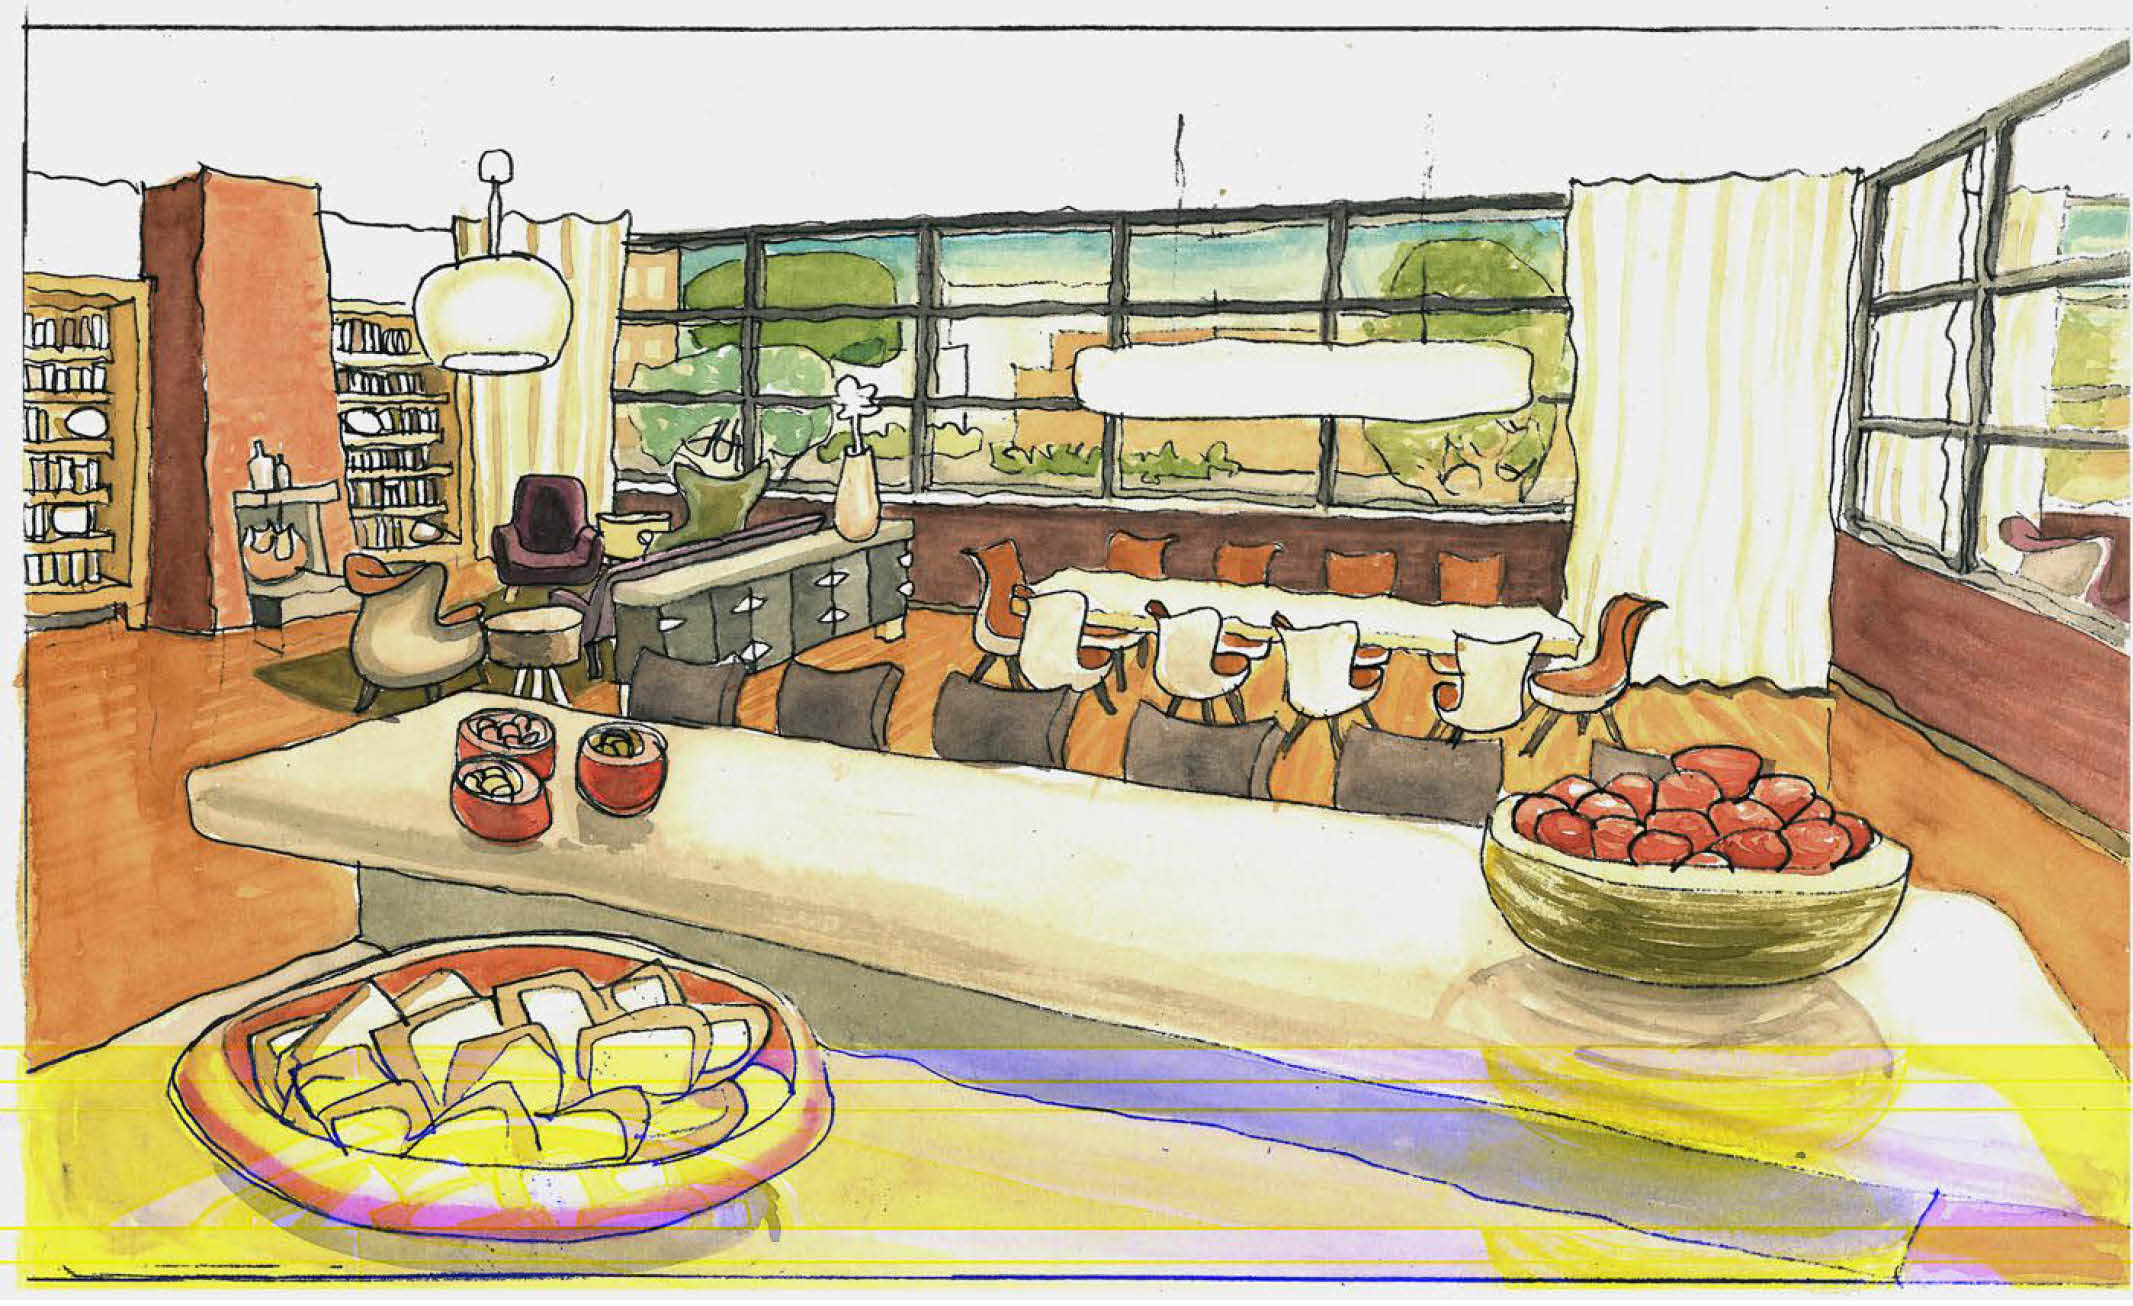 Watercolor Study of Shared Living Space